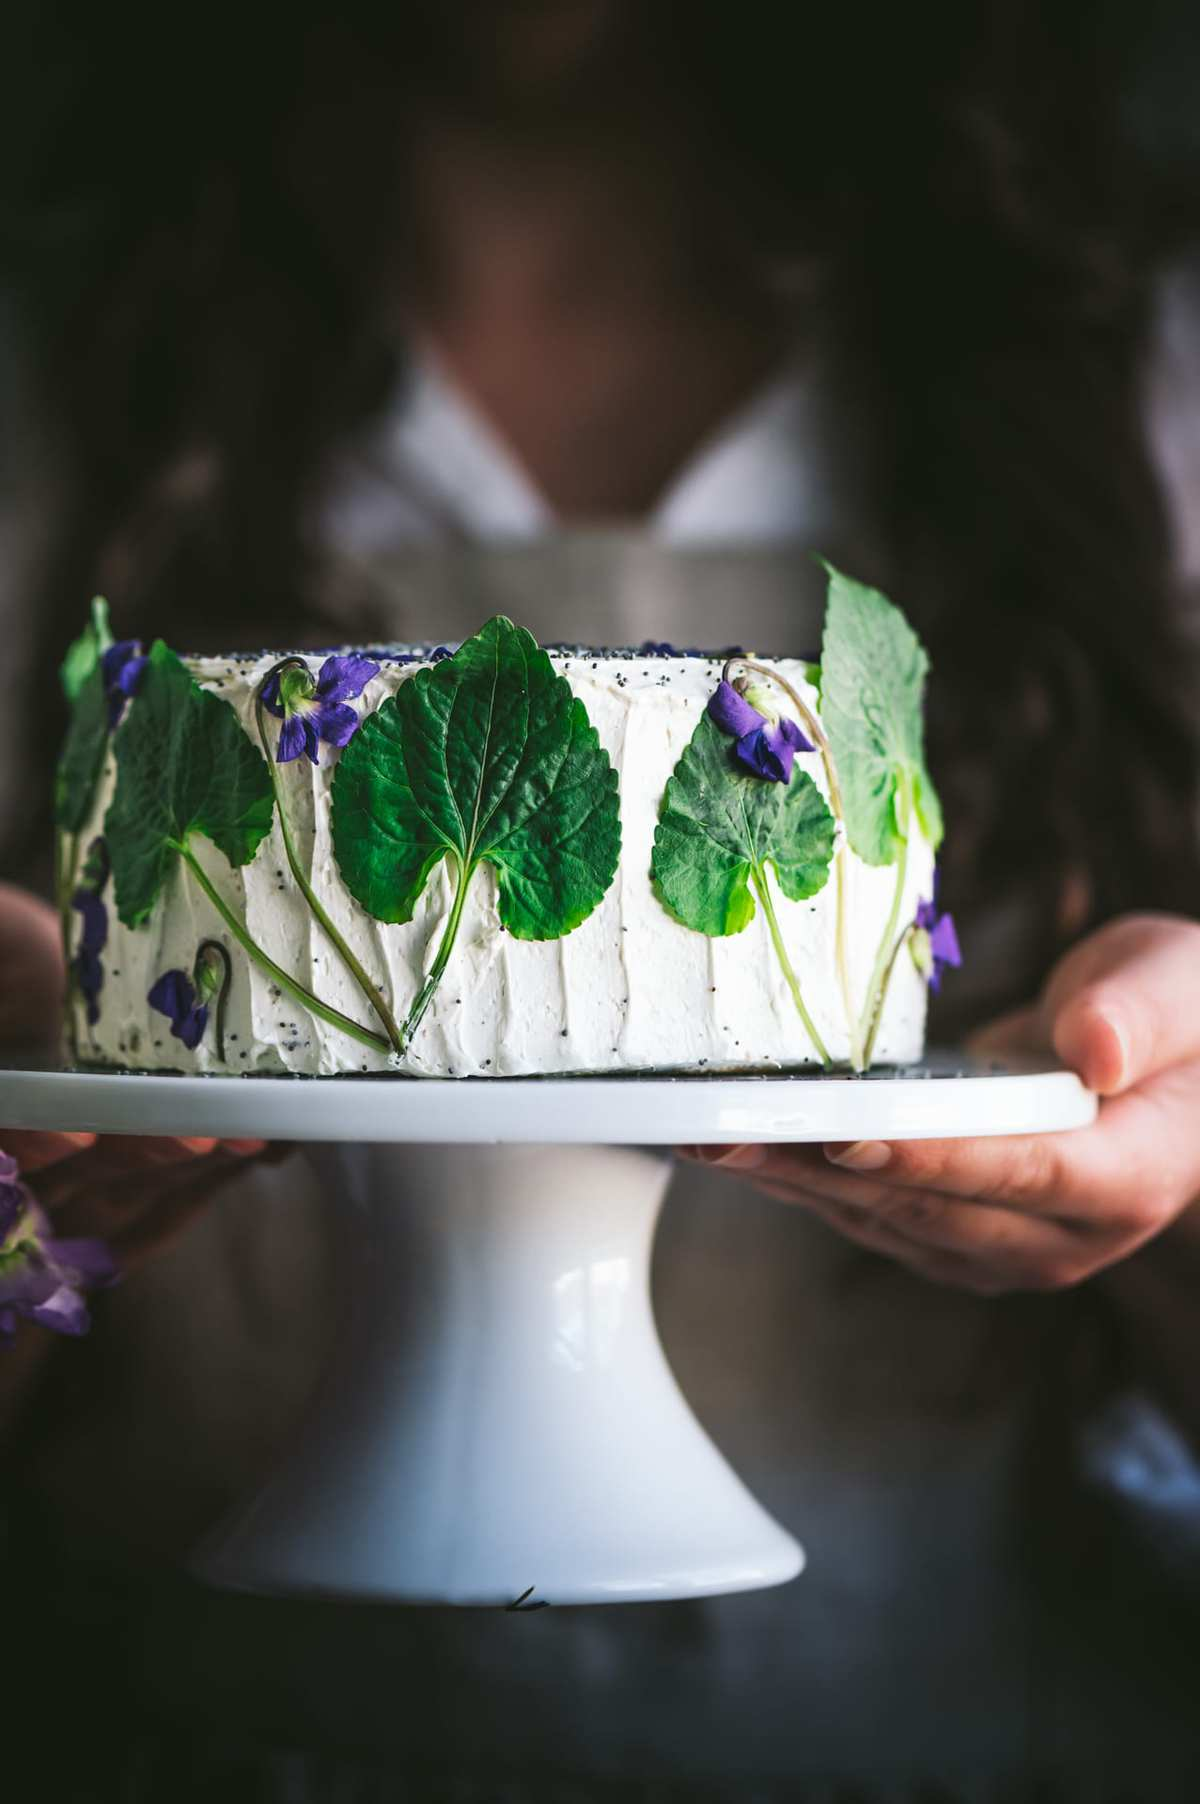 emon poppy seed cake with Swiss buttercream frosting decorated with wild violets